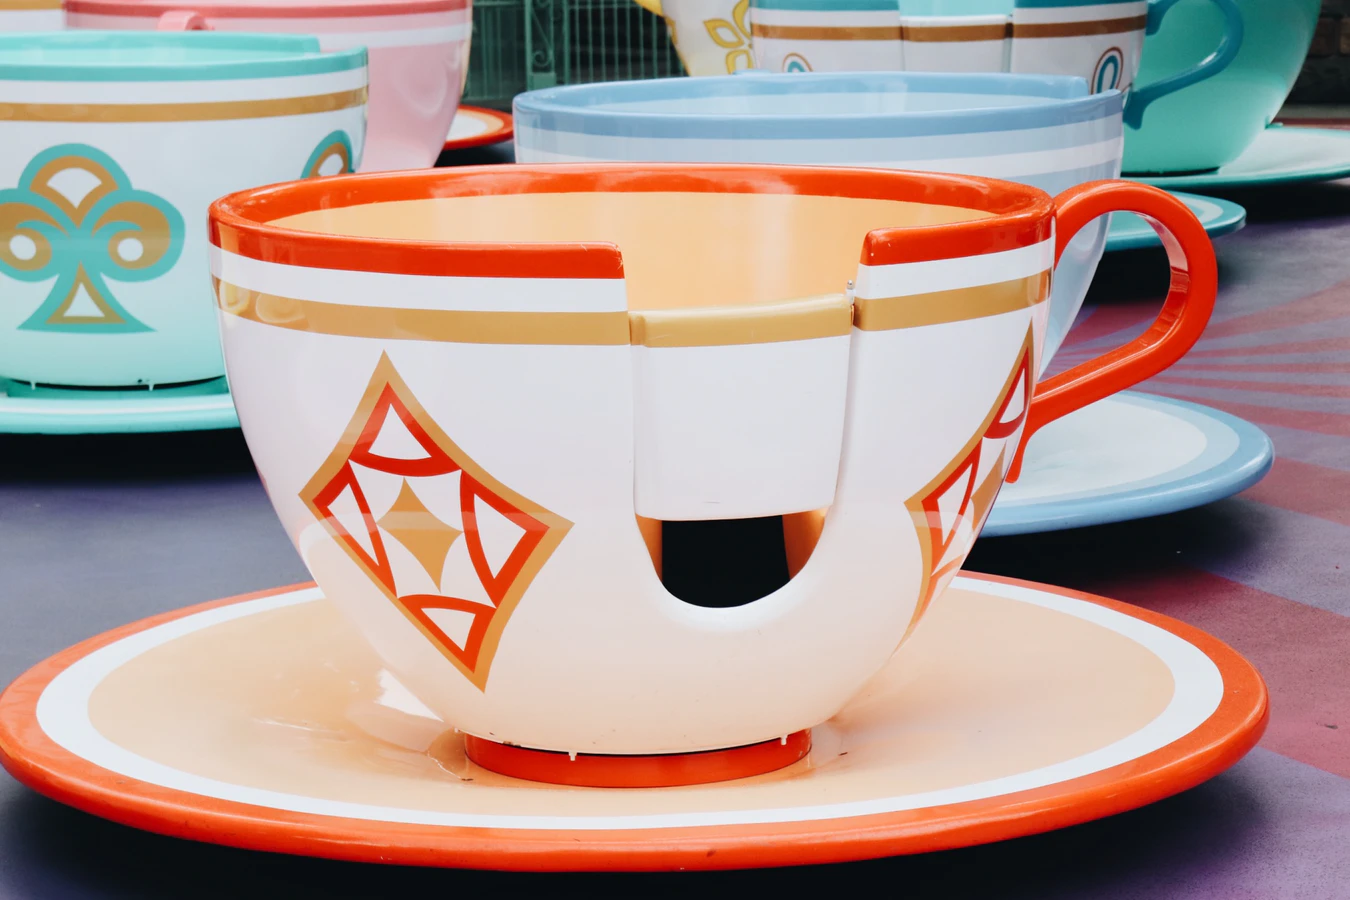 Teacup ride at Disneyland